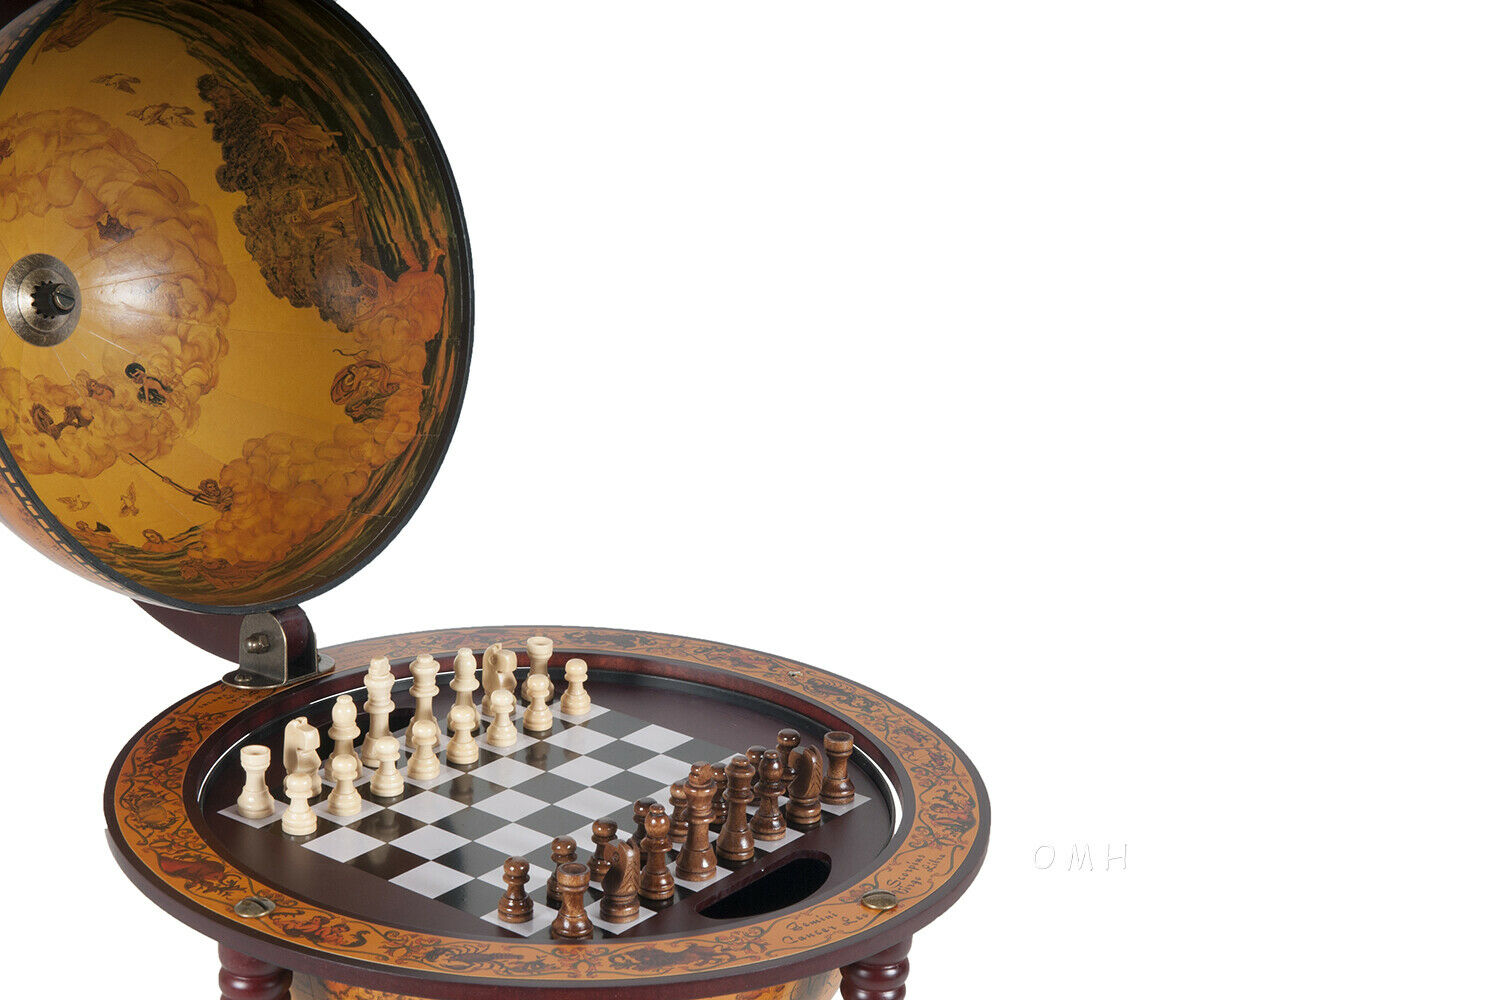 Unique Chess Board w// Pieces Hidden in Wood Table Top Nautical Old World Globe